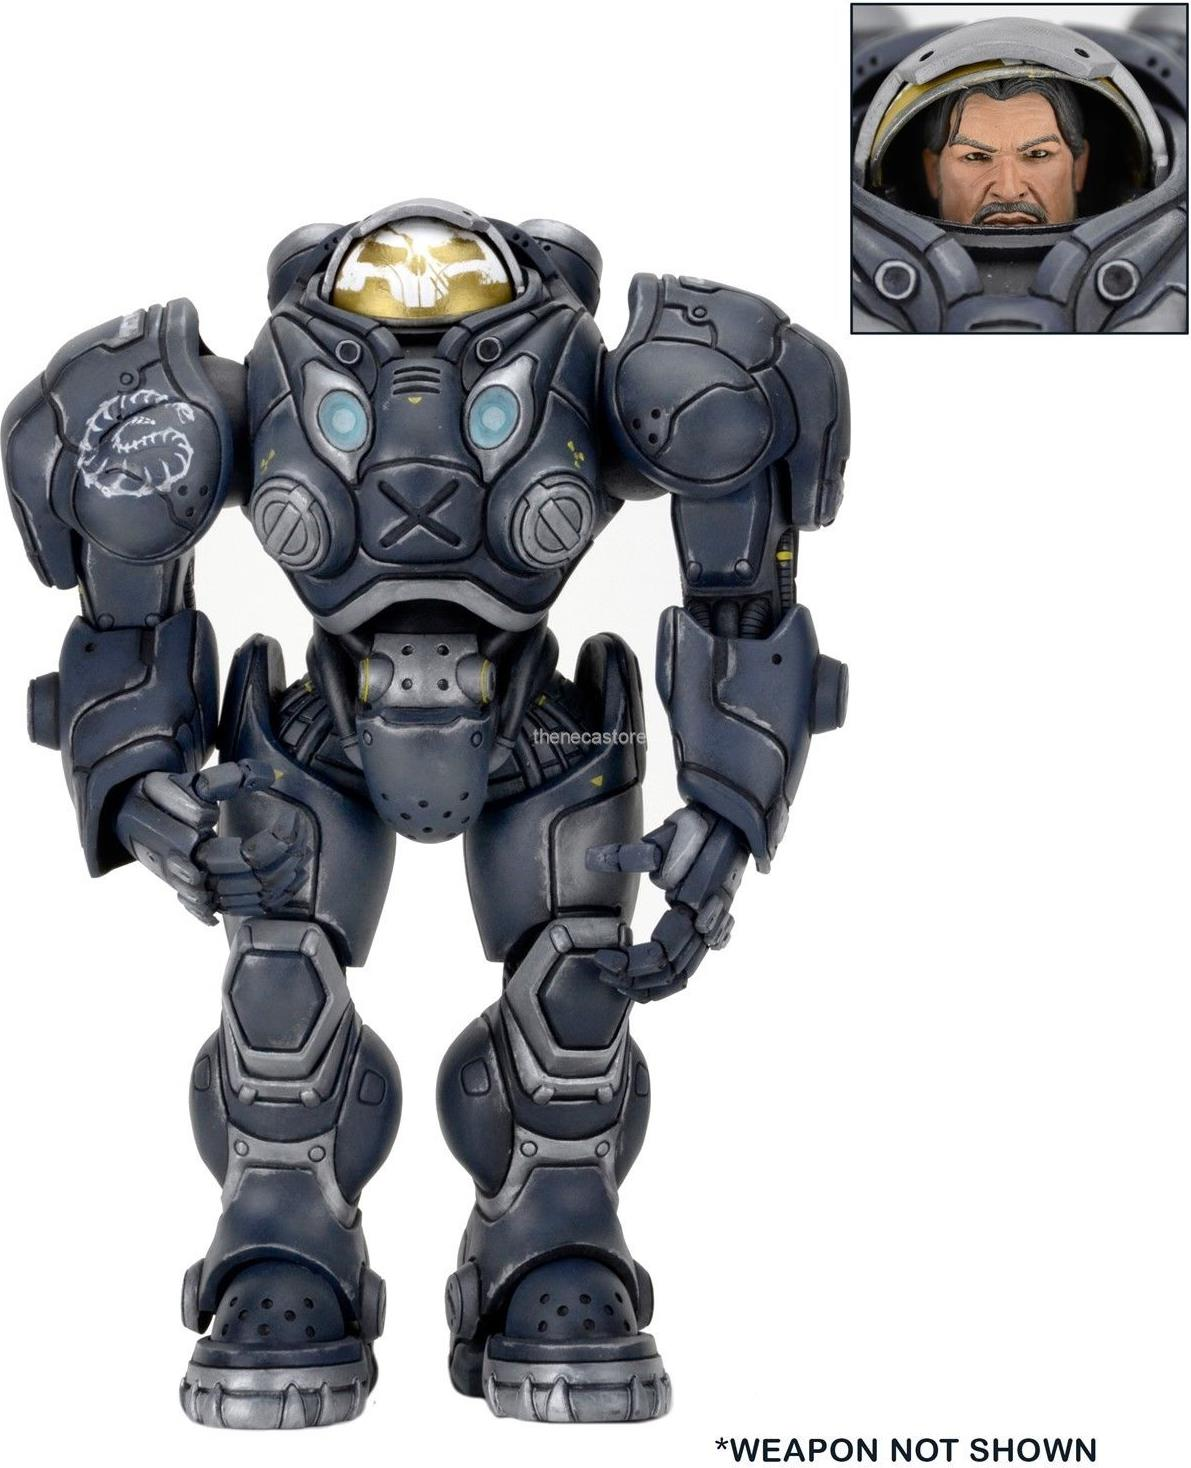 NECA Heroes of the Storm 7 inch Figure - Raynor